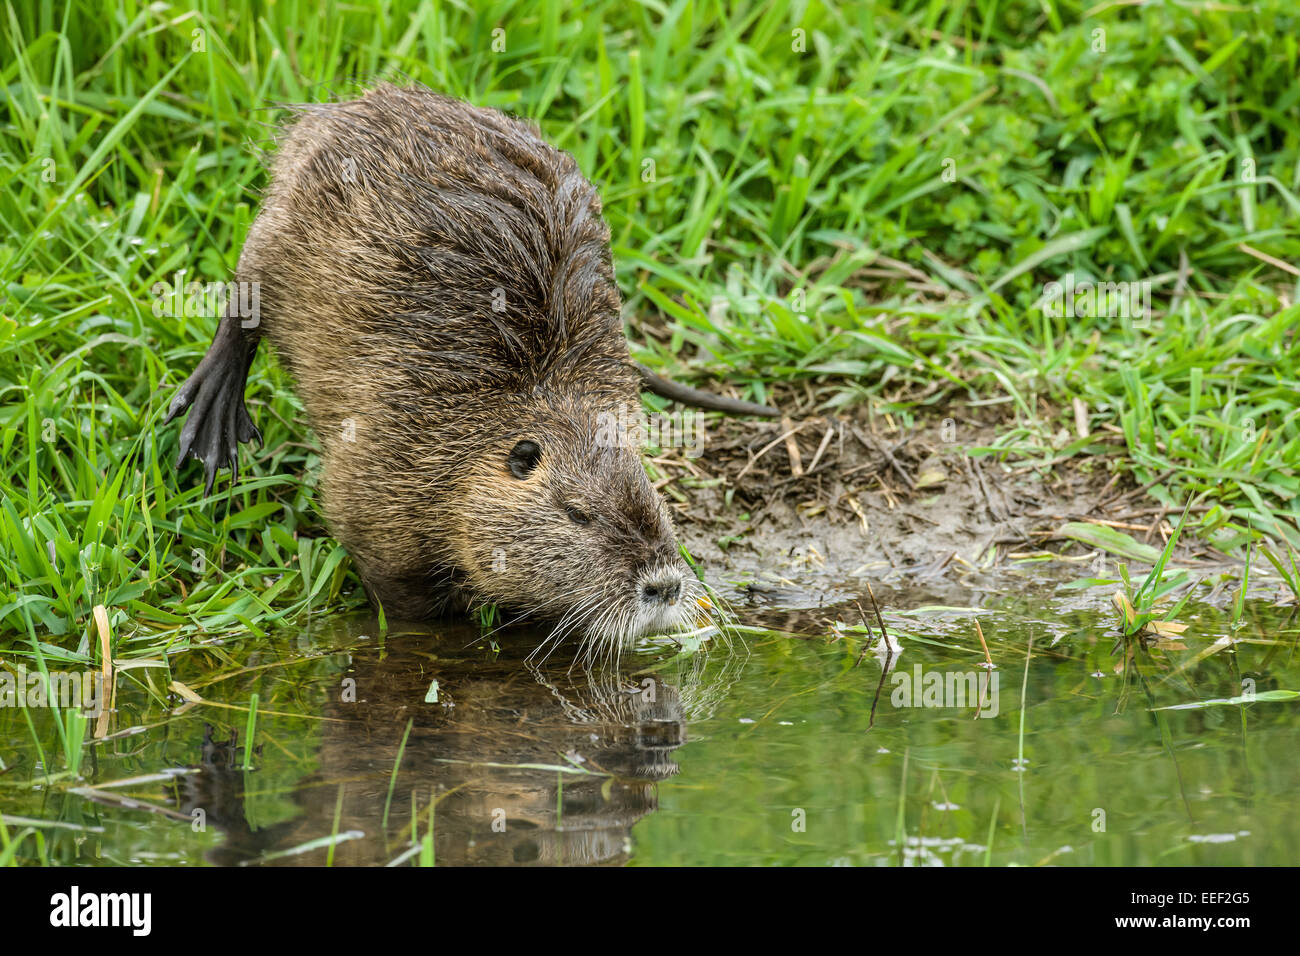 Coypu, also known as the river rat or nutria, is a large, omnivorous, semi-aquatic rodent.Stock Photo